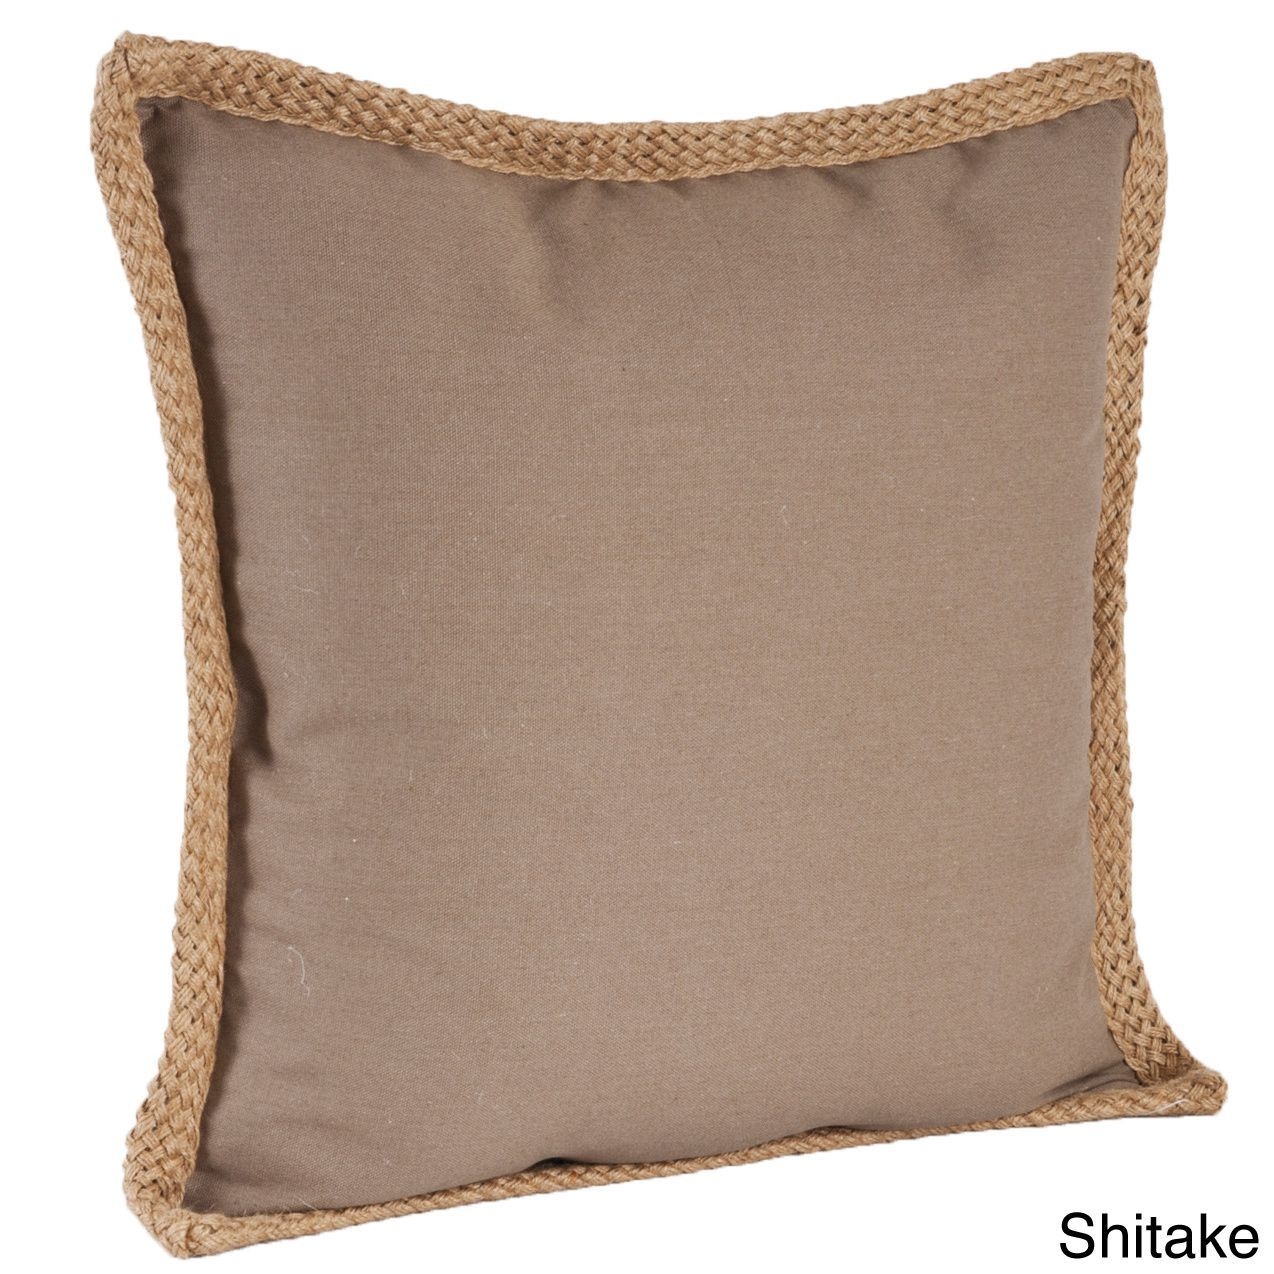 Saro Jute Braided Down Filled Throw Pillow (Shitake), Blue, Size 20 x 20 (Cotton, Solid Color)